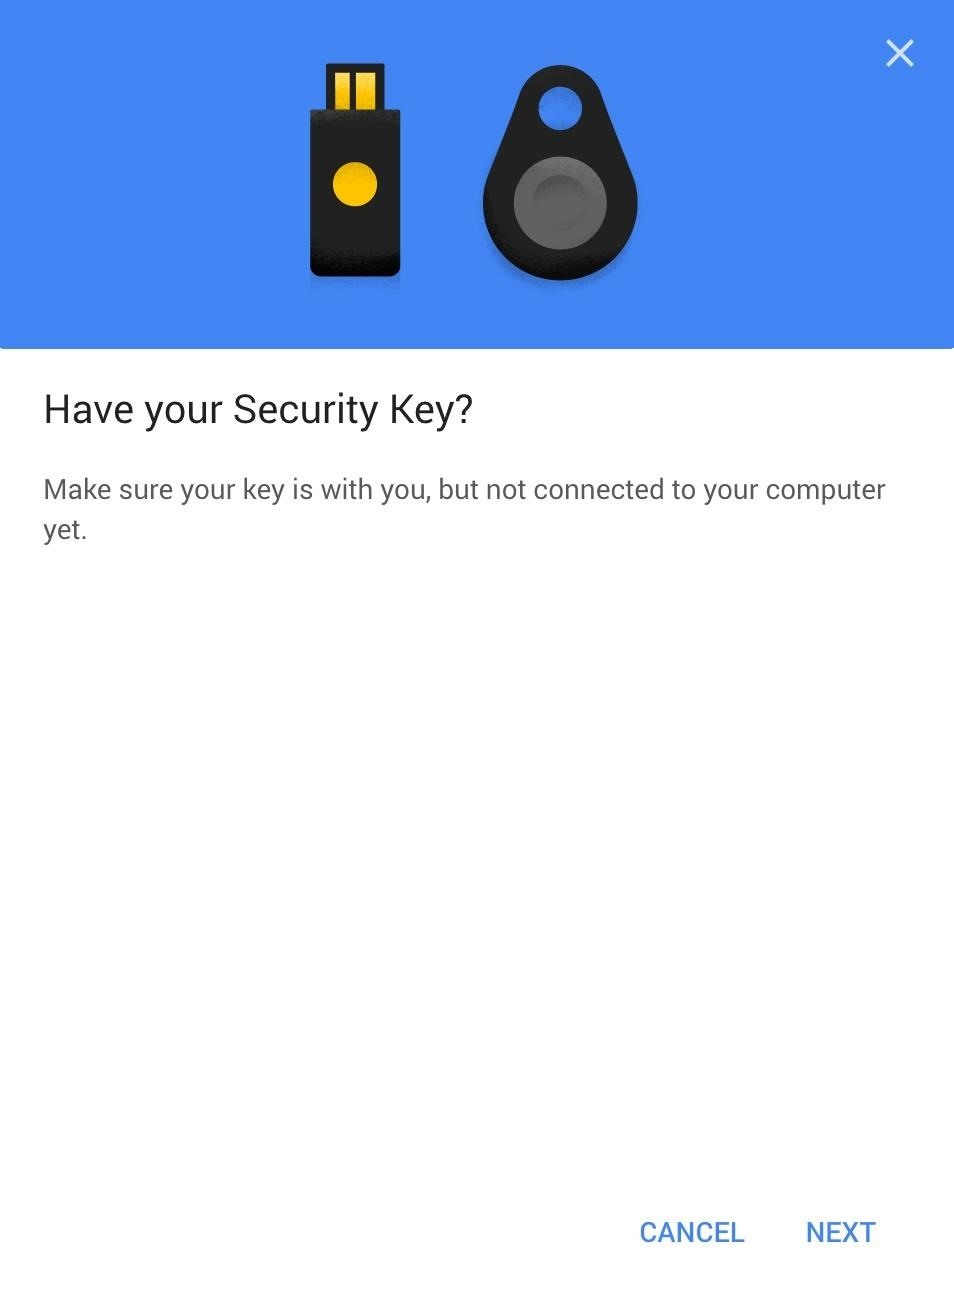 How to Use Google's Advanced Protection Program to Secure Your Account via Phishing